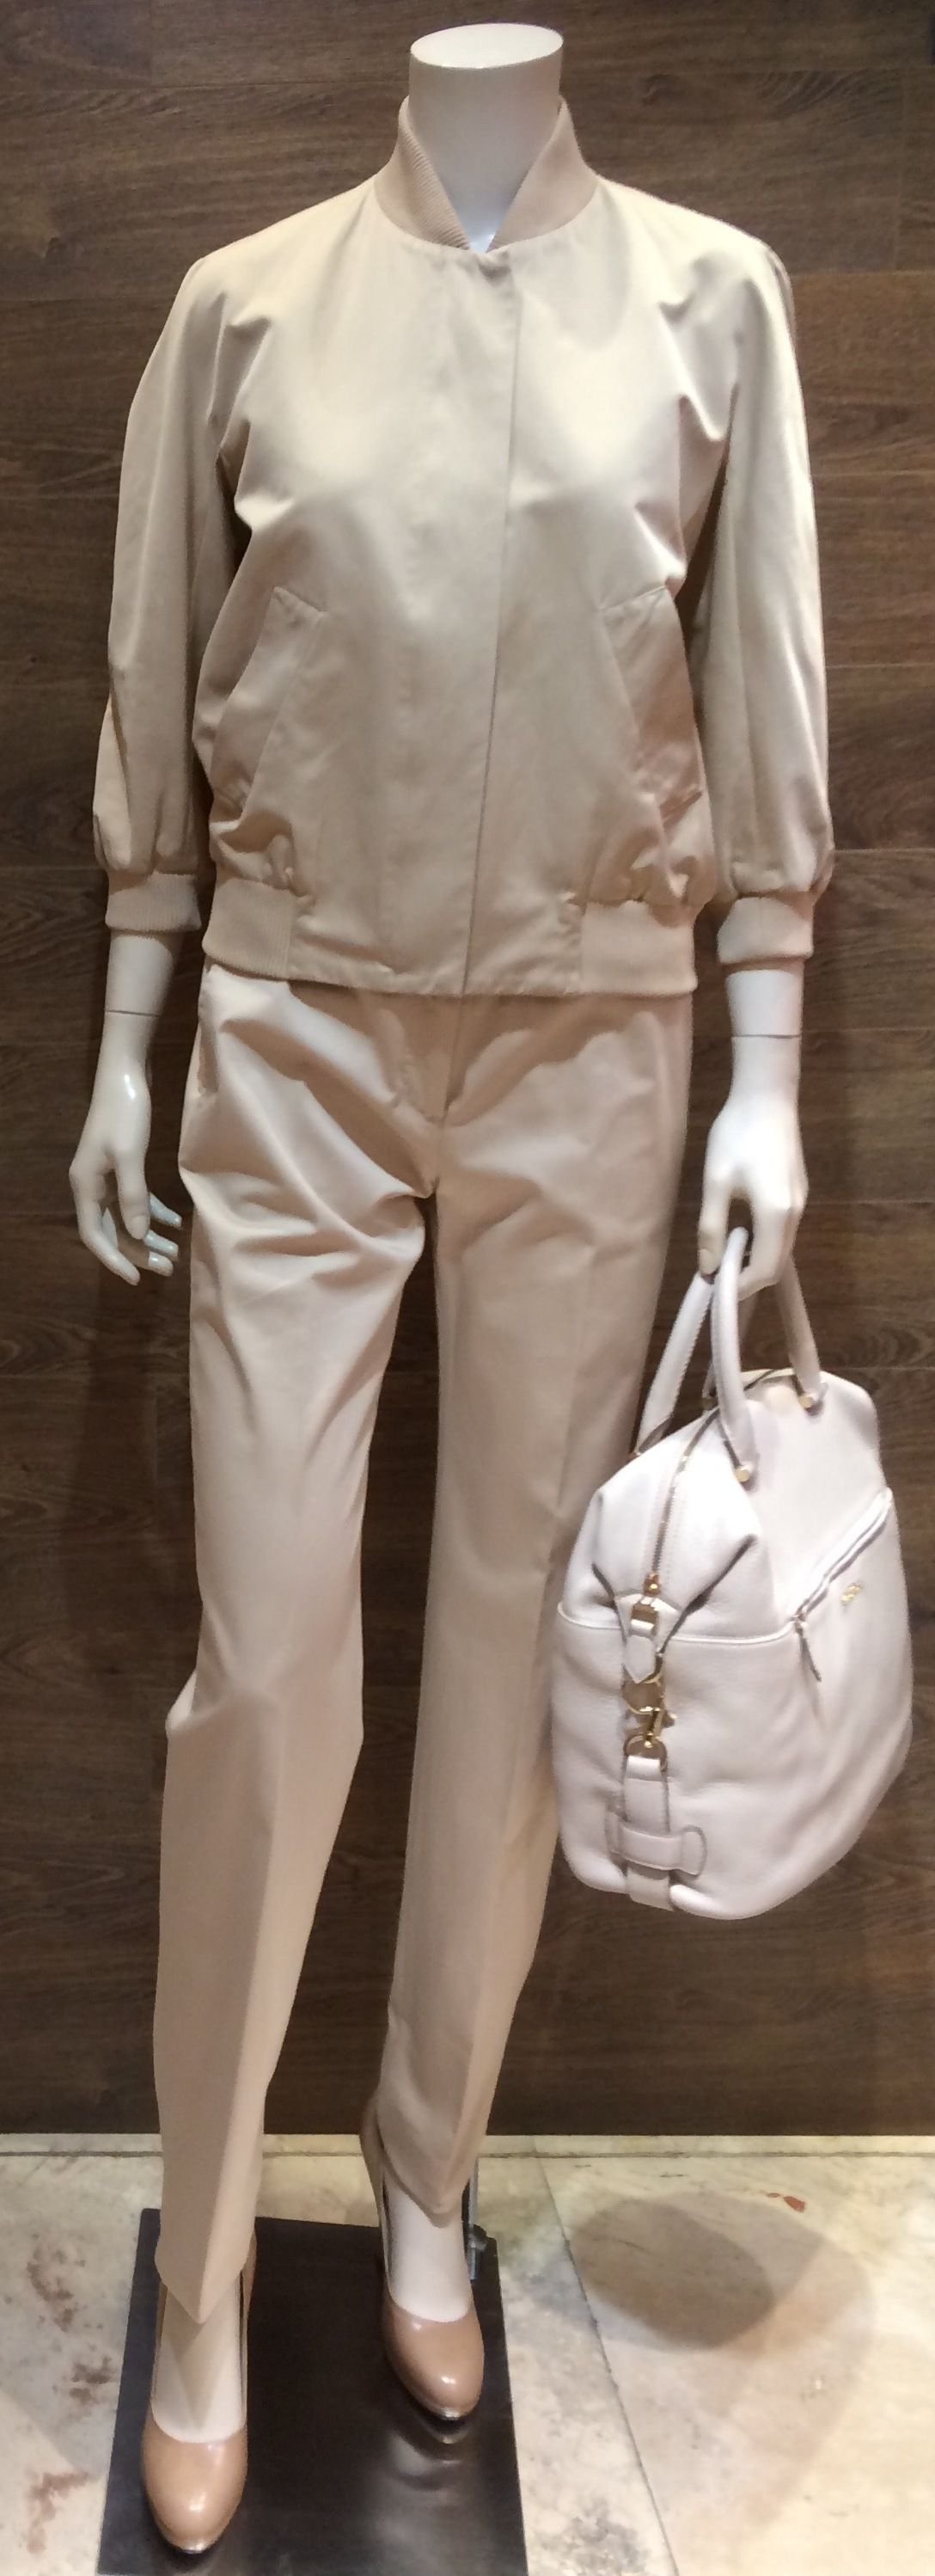 "Always the minimalist, Max Mara presents its less-is-more ideal with an understated beige stretch sateen ¾ sleeve bomber jacket that flaunts a timeless quality | Studio collection beige cotton pants | MaxMara ""Filly"" nude patent leather peep toe heel 